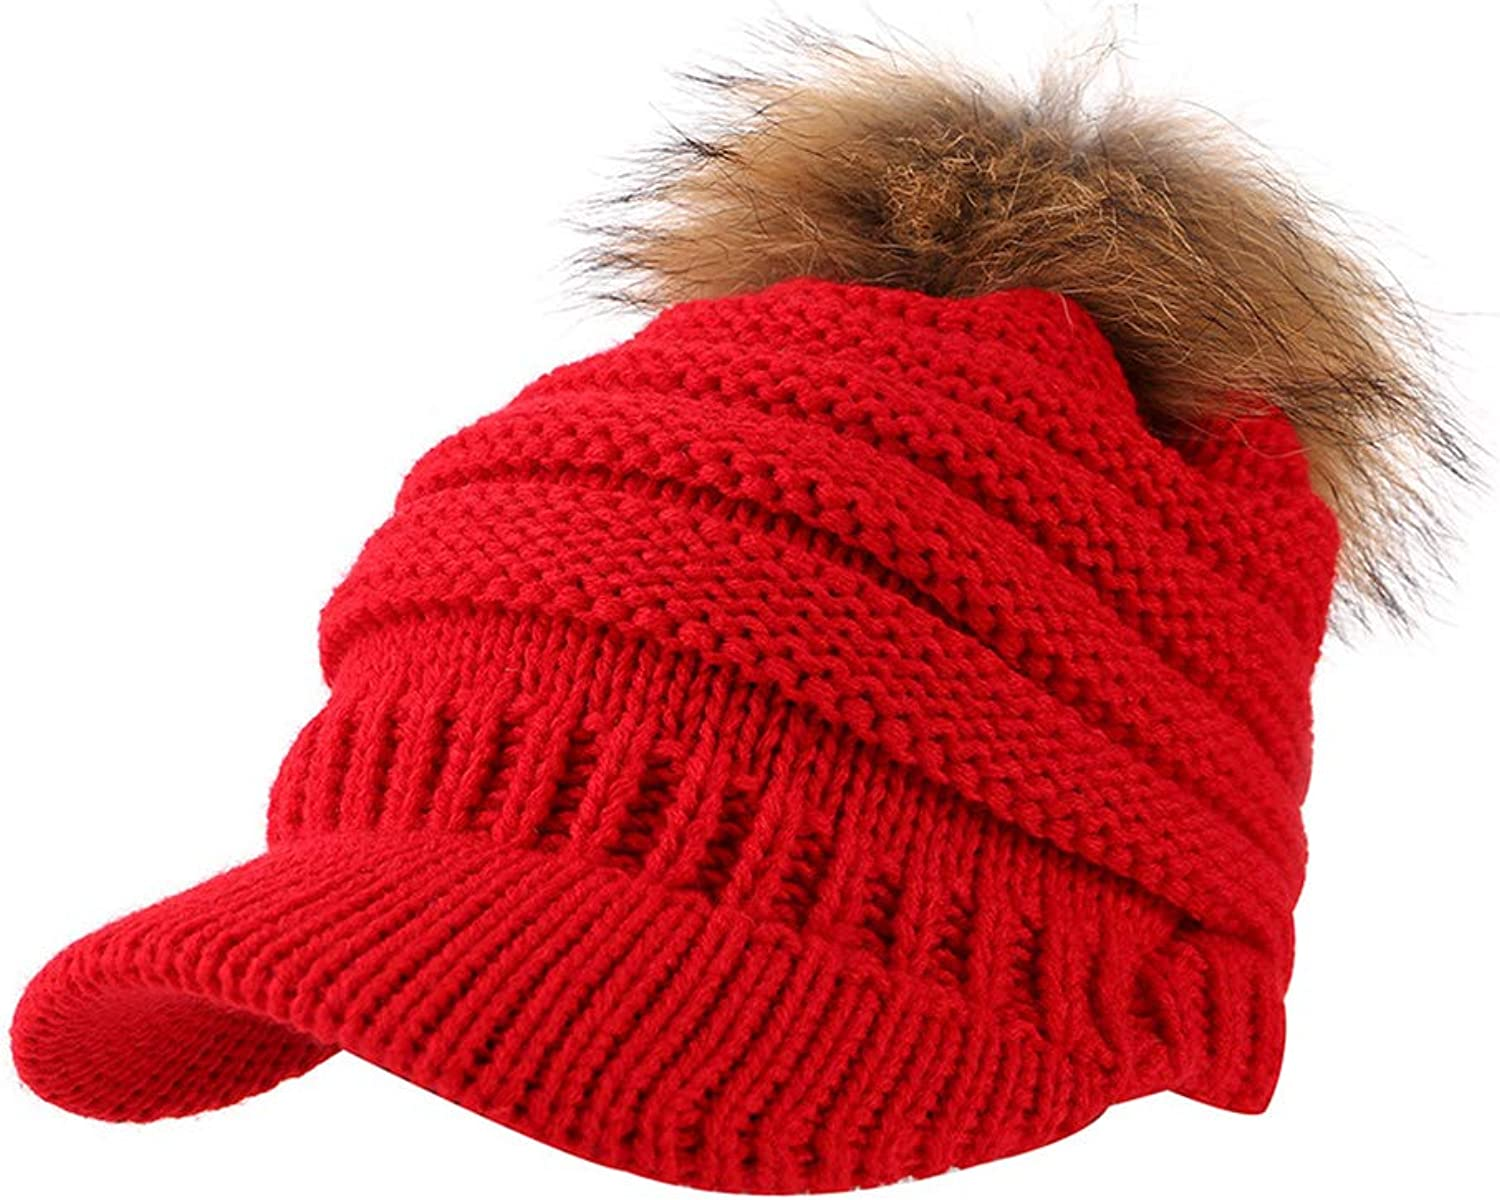 Hairball Knitted Baseball Cap, Women Adjustable Casual Fashion Caps Winter Cotton Outdoor Thermal Hat (5658cm),Red